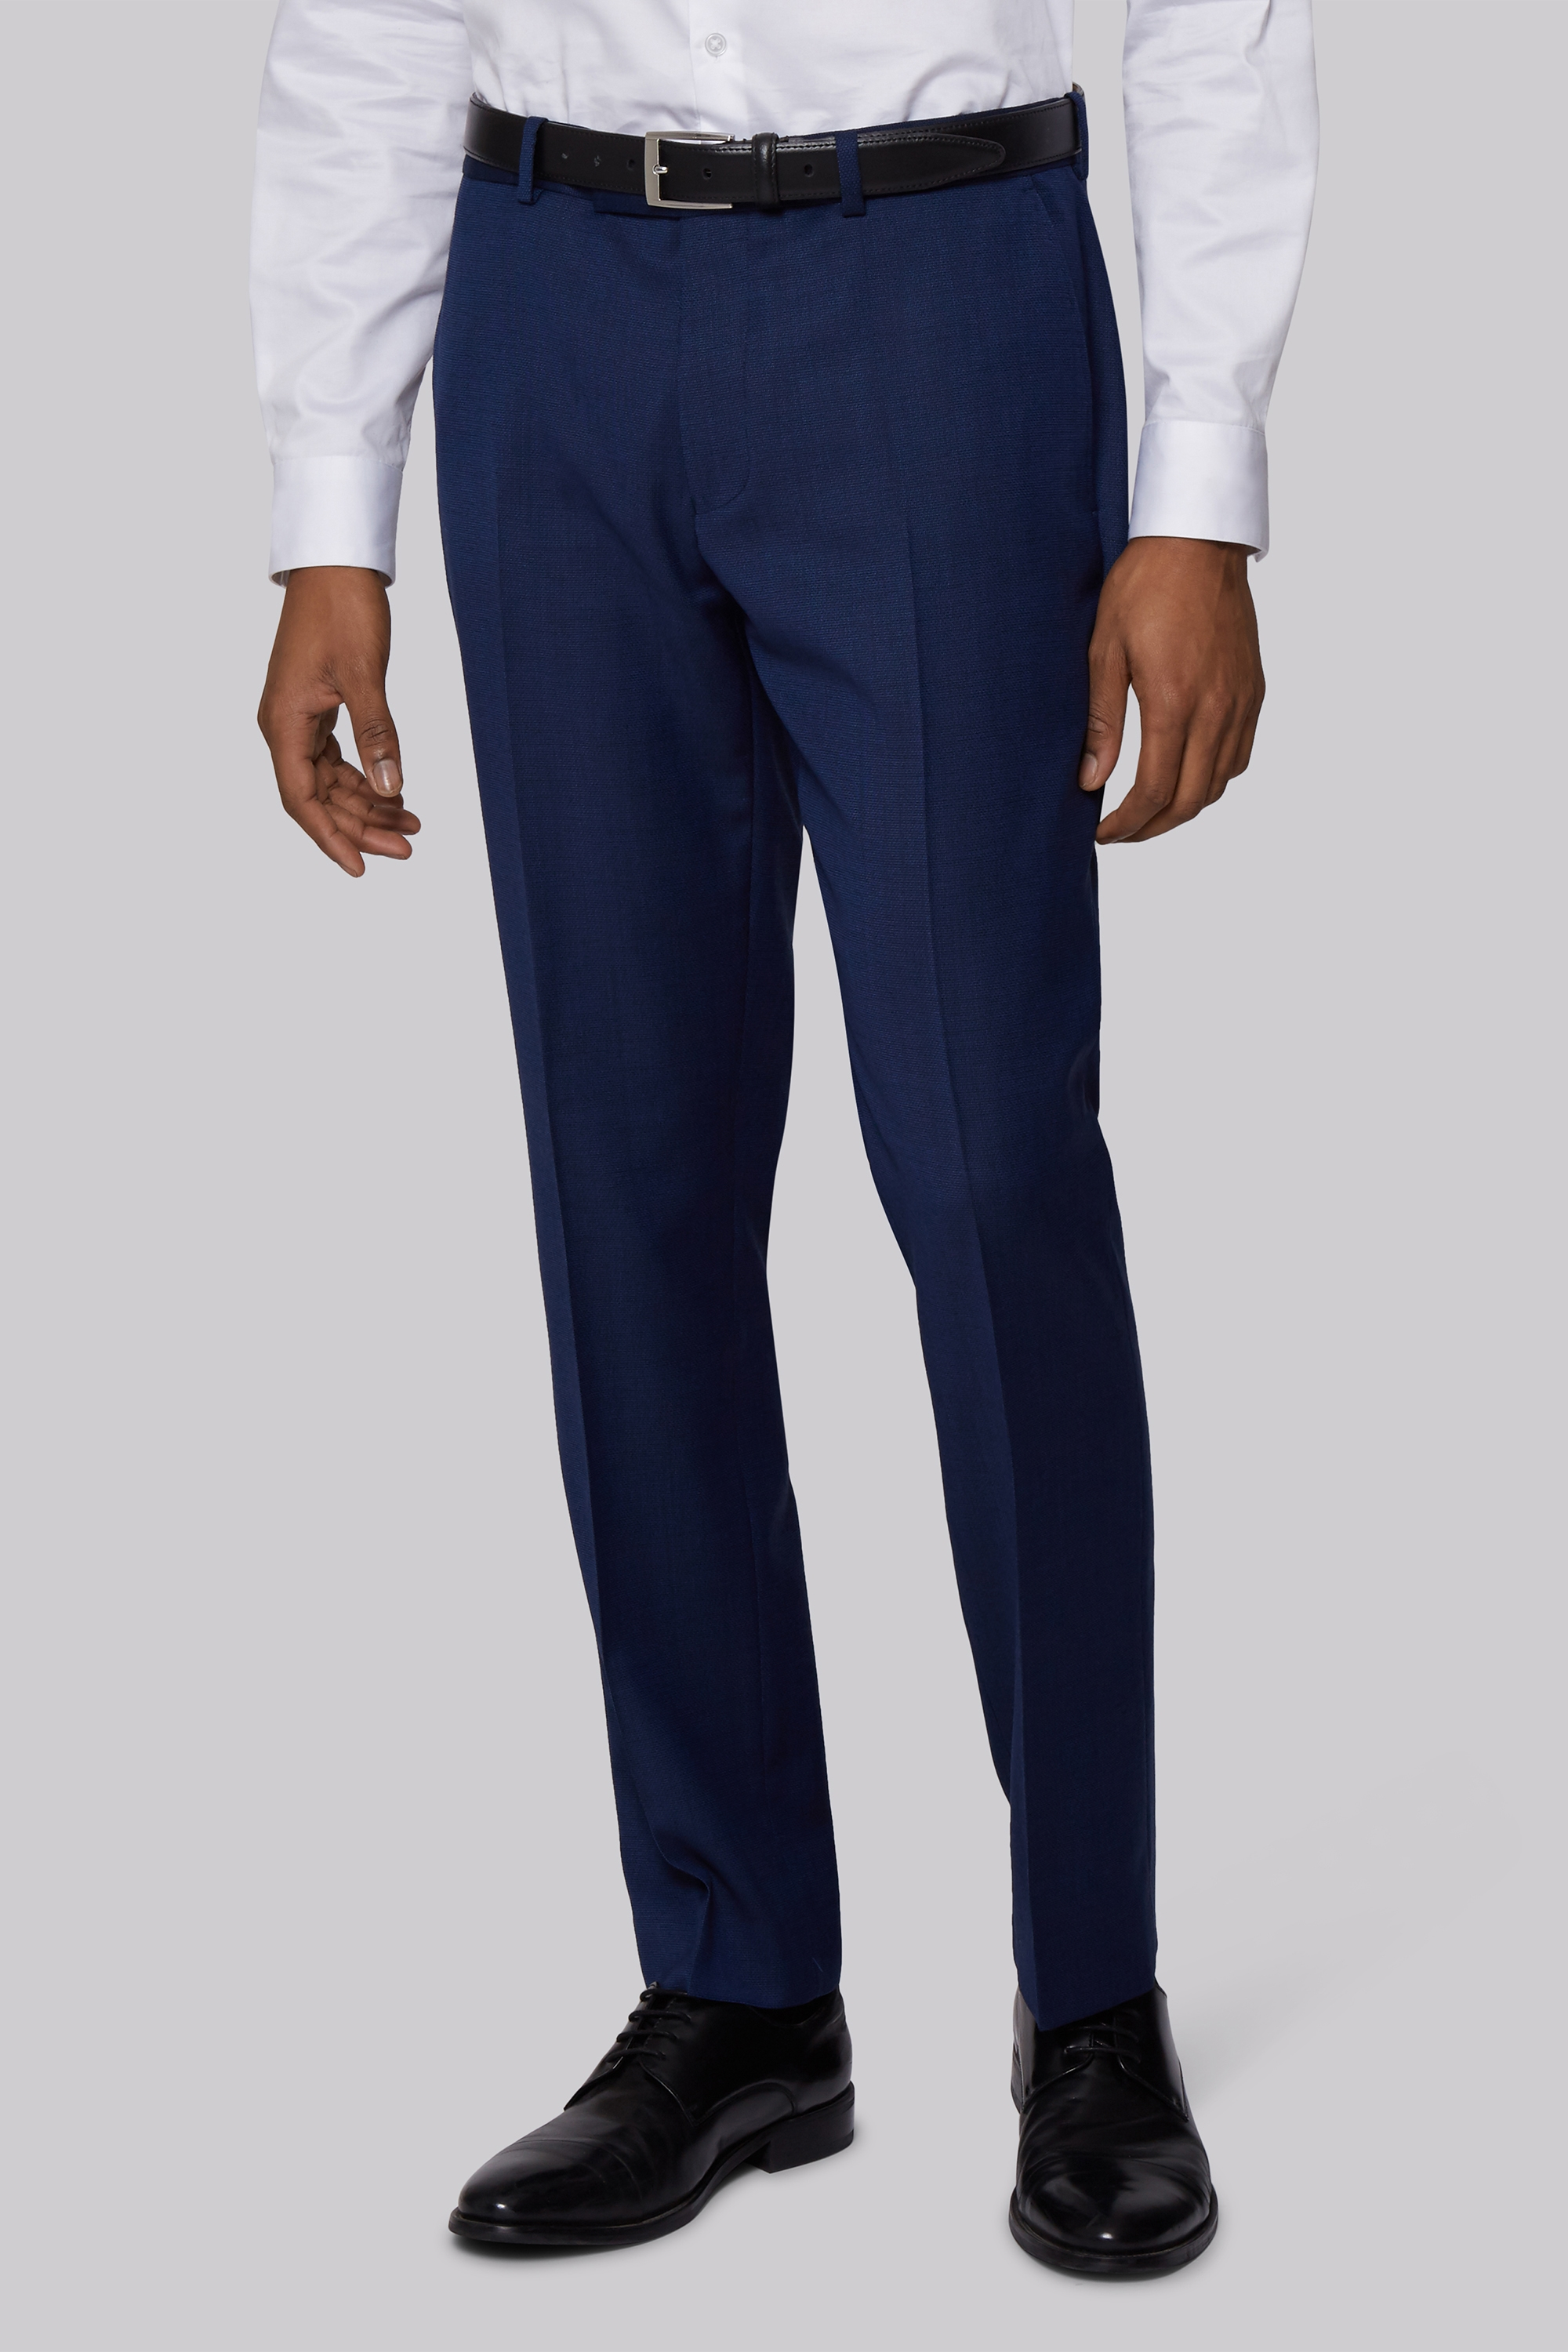 Moss Bros DKNY Slim Fit Blue Texture Trousers